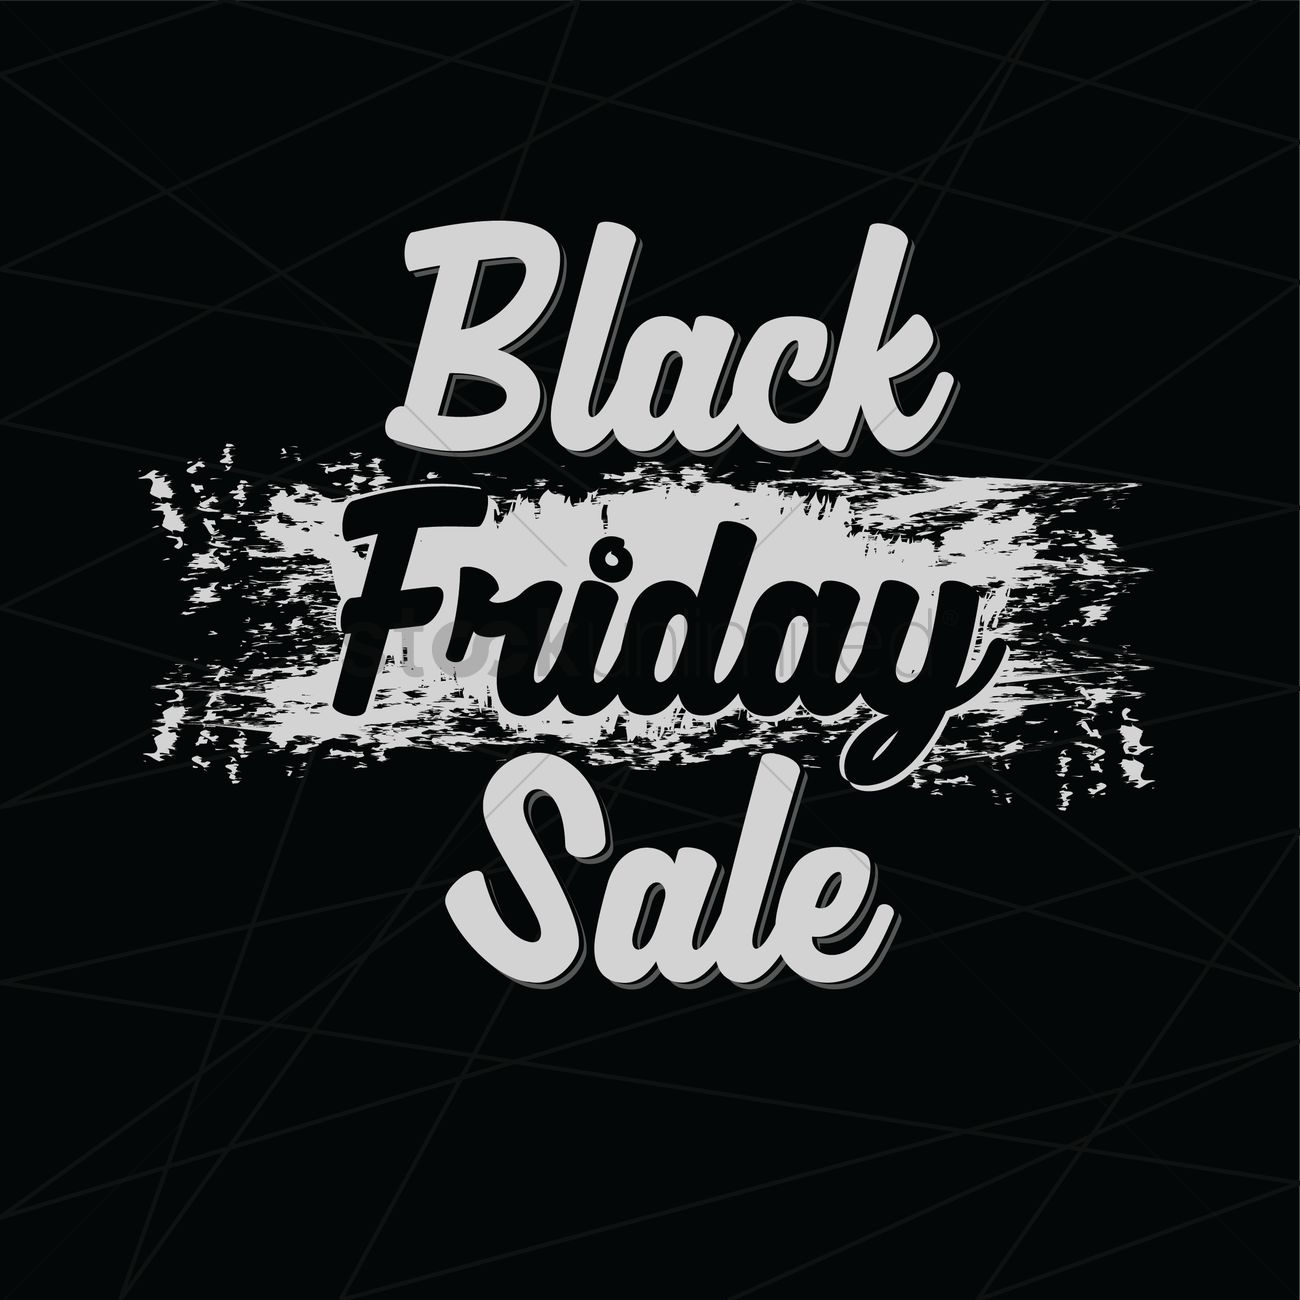 Black friday sale wallpaper Vector Image   1584115 StockUnlimited 1300x1300